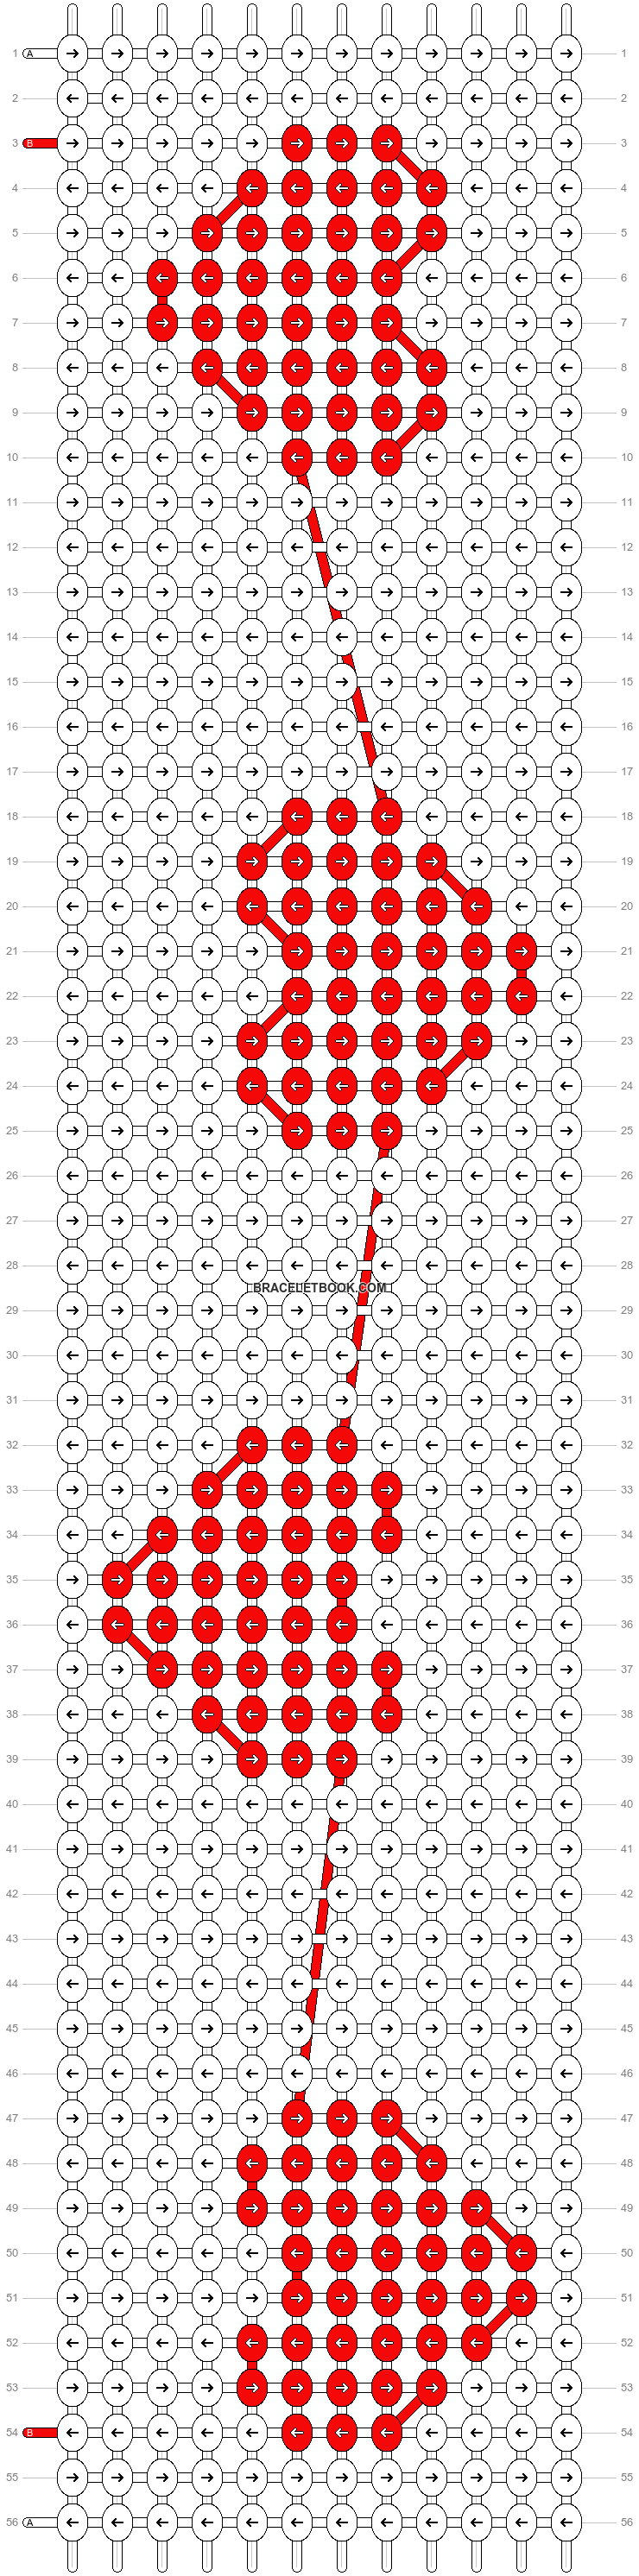 Alpha Pattern #21851 added by bazinga95